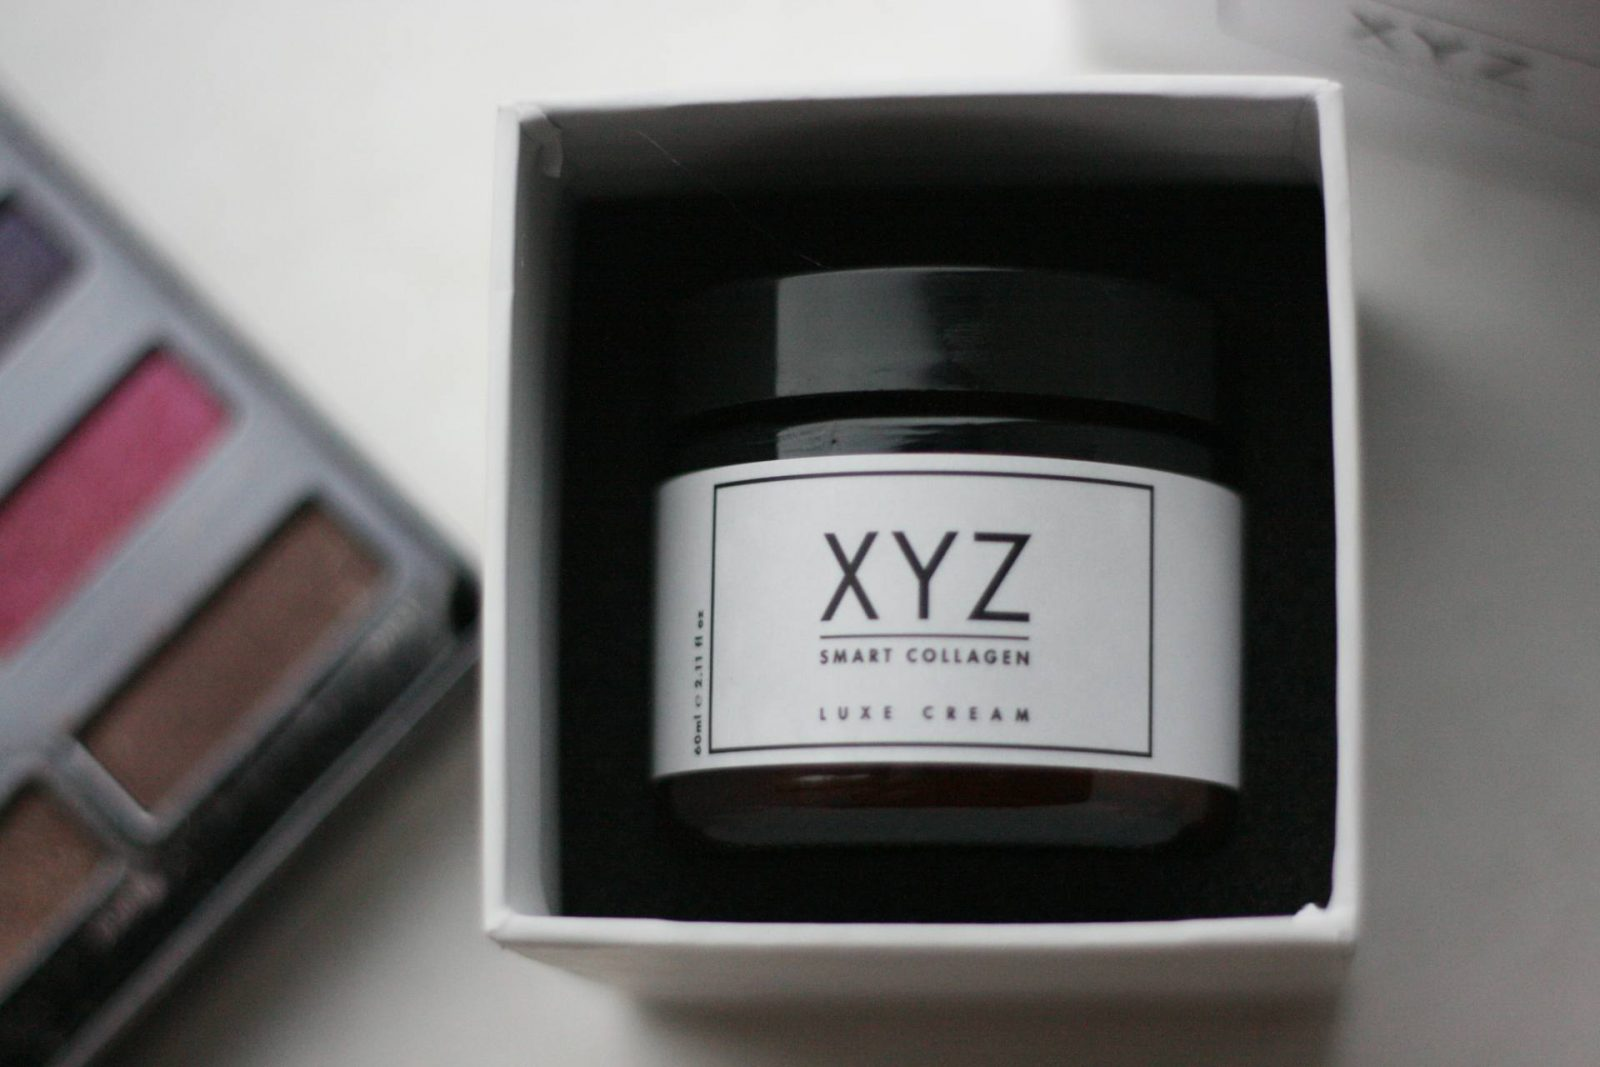 XYZ Collagen Cream - in-box view